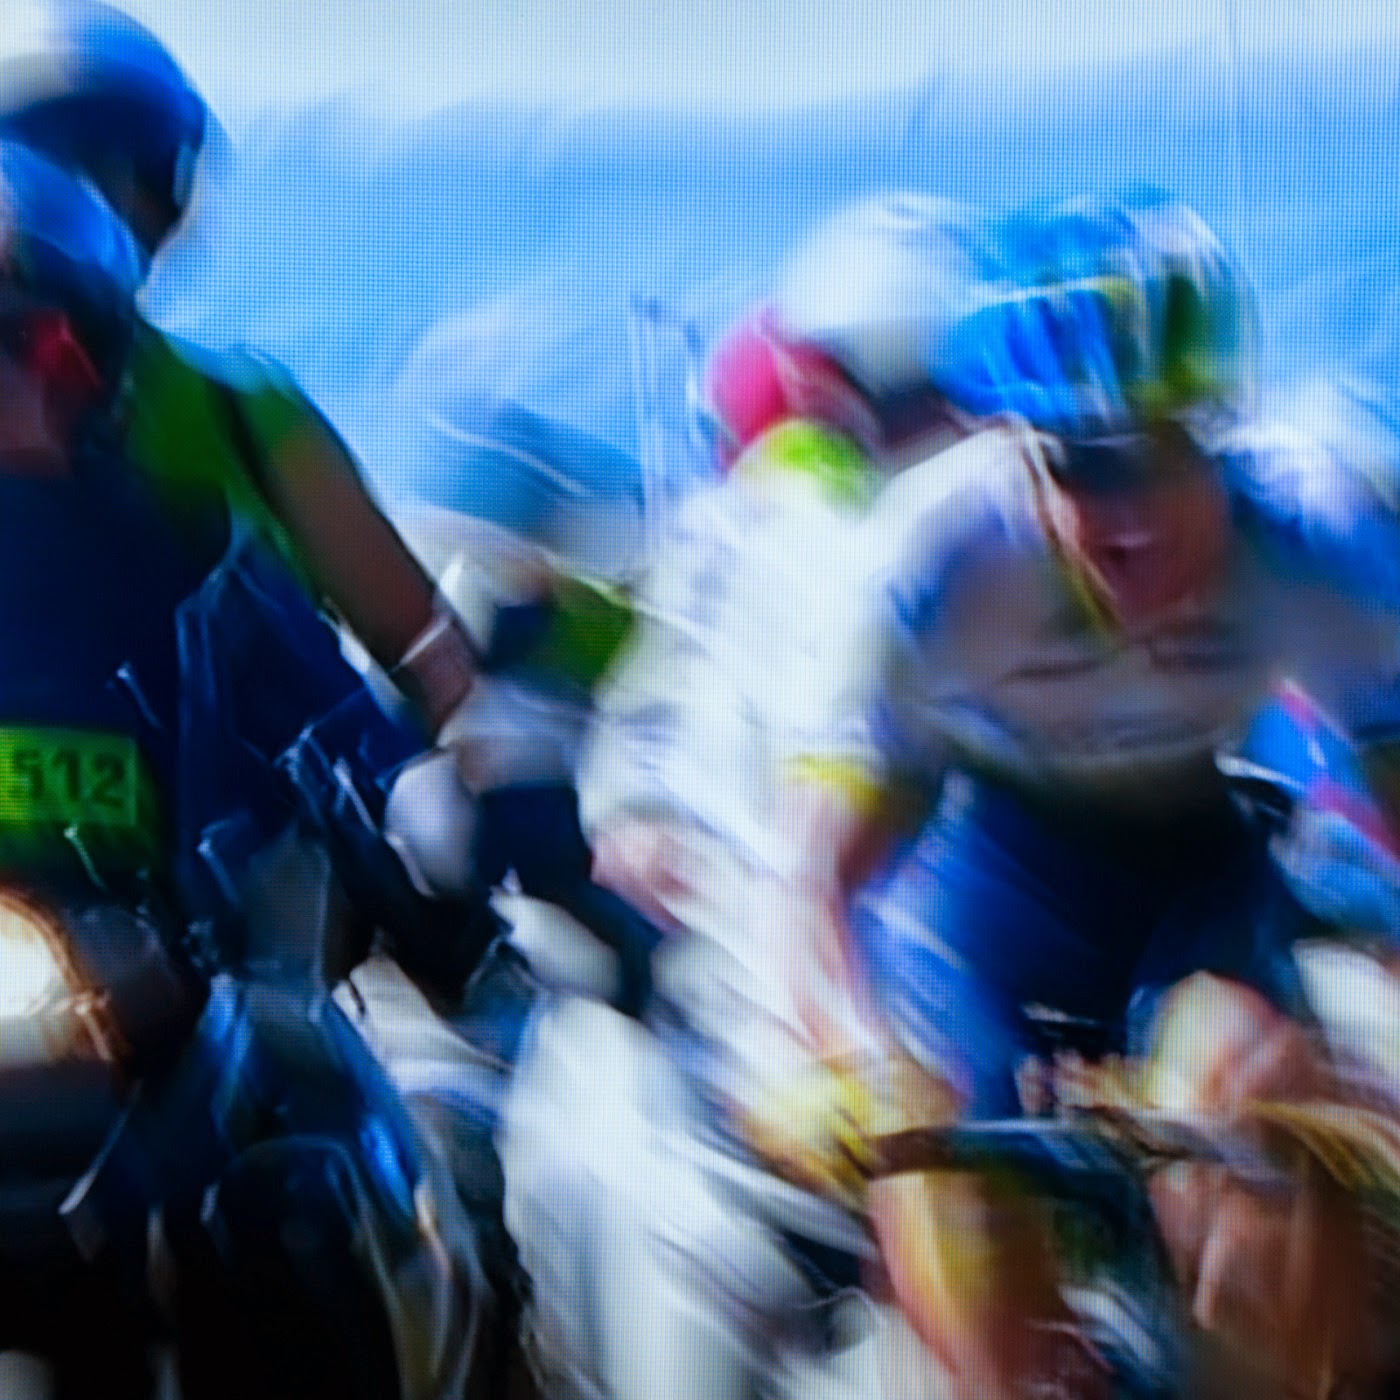 le tour de france, motion blur, blur, abstract, abstraction, tim macauley, photographic art, you won't see this at MoMA, appropriation, found imagery, le tour 2014, tv footage, portrait, timothy Macauley, the light monkey collective, grand cycling tour, team orica green edge